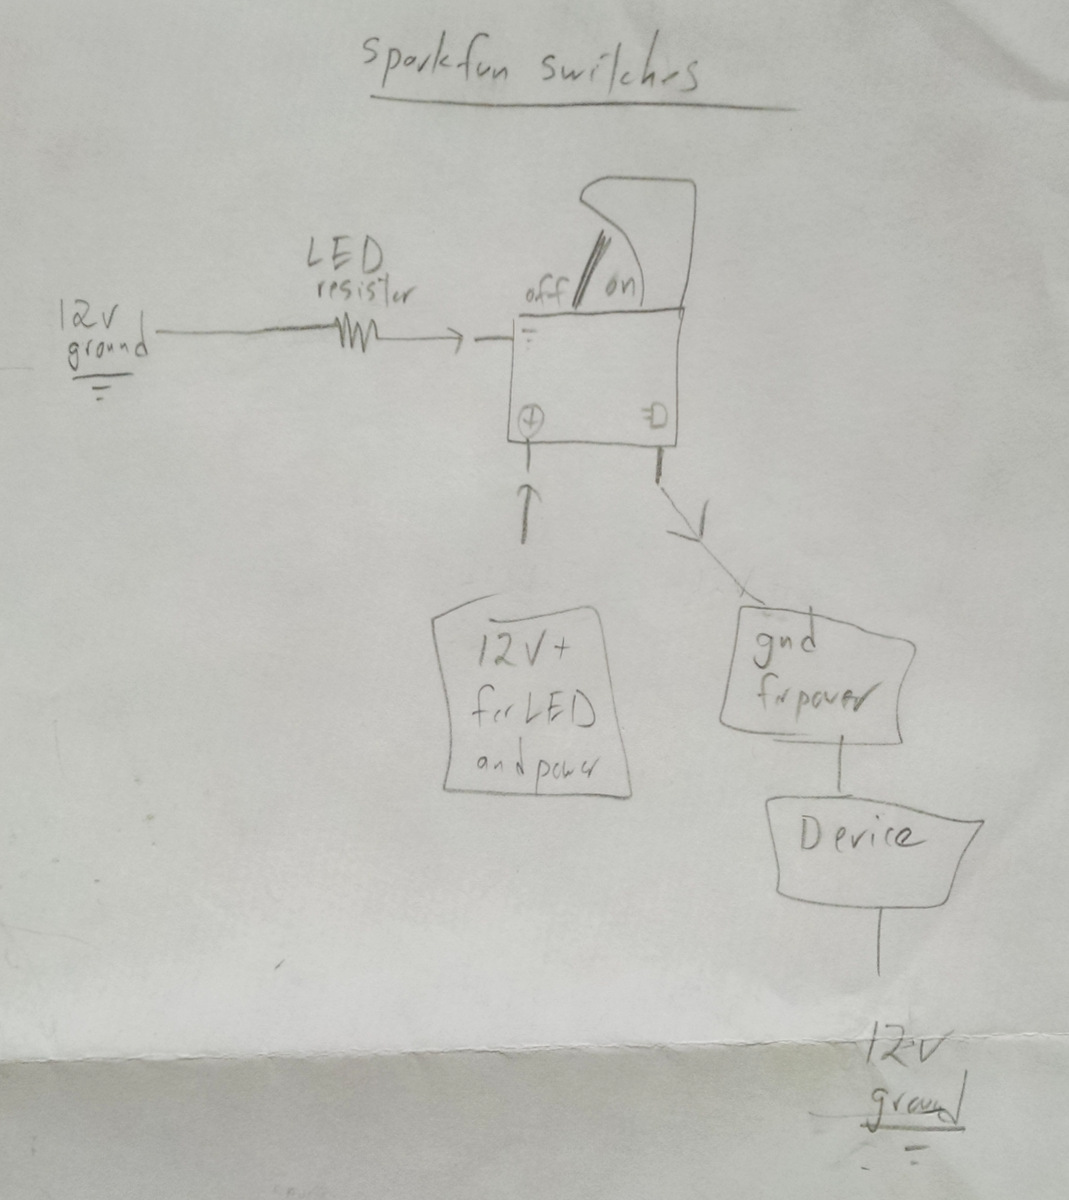 Lee.org » Blog Archive » Sparkfun Illuminated Switch Schematic